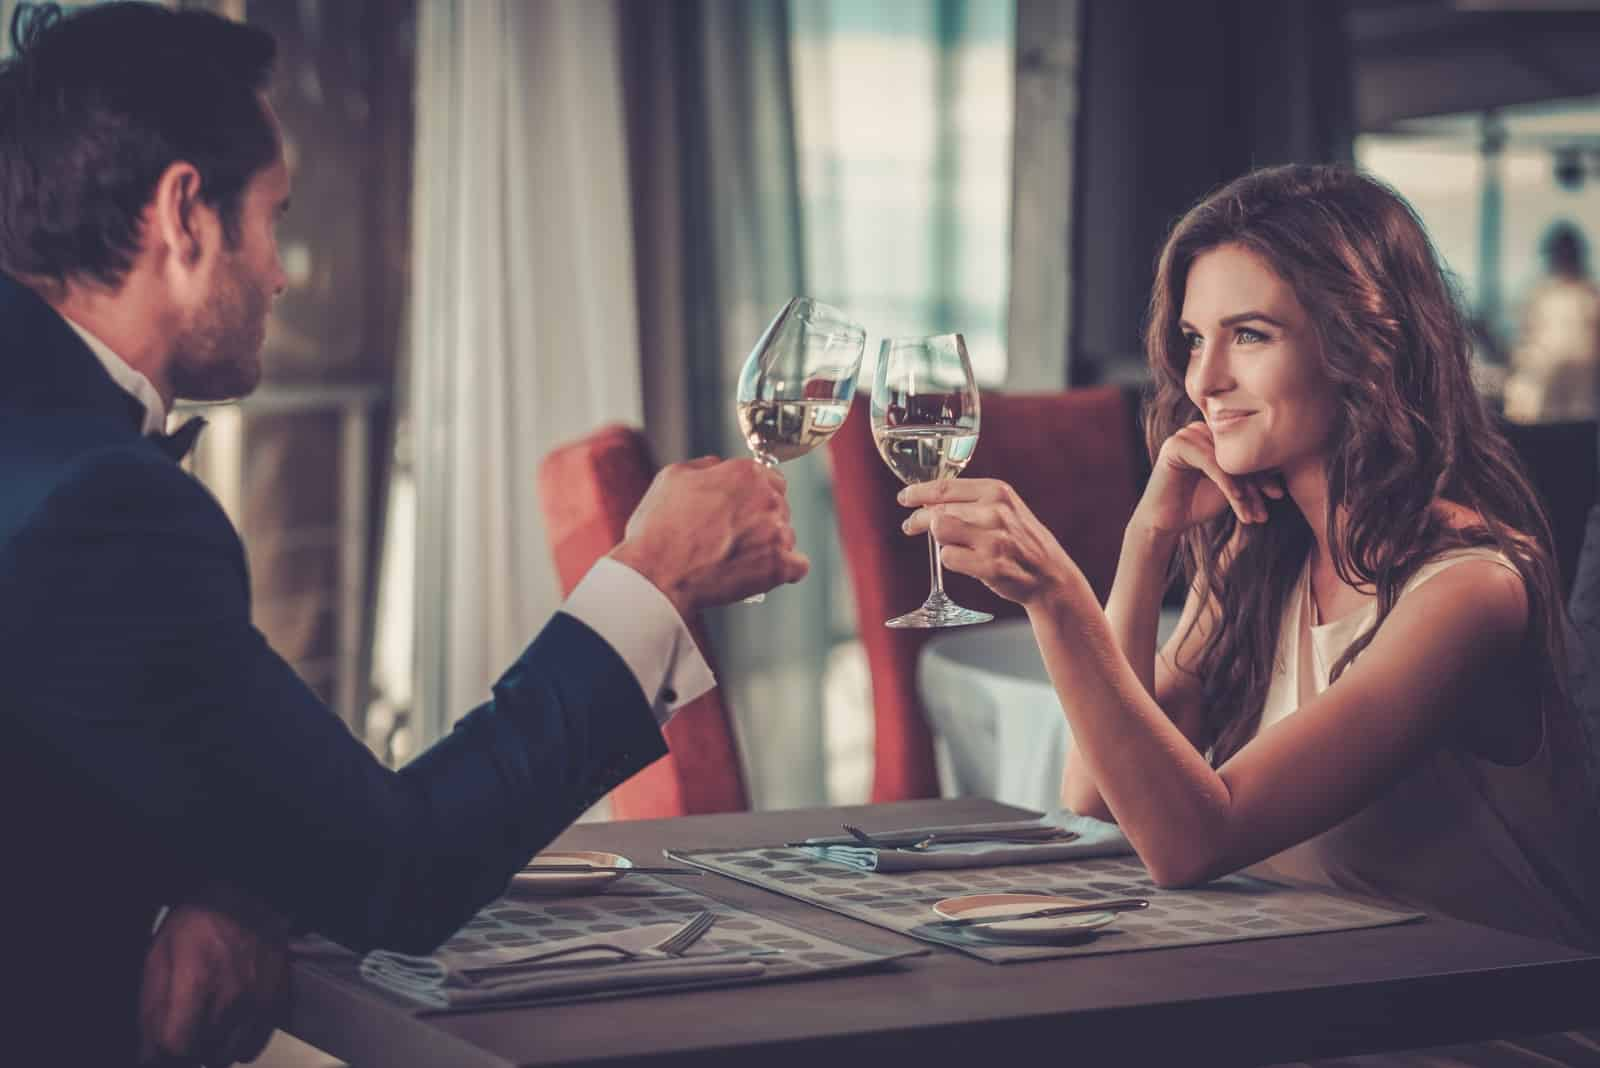 man and woman toasting wine glasses during a romantic dinner